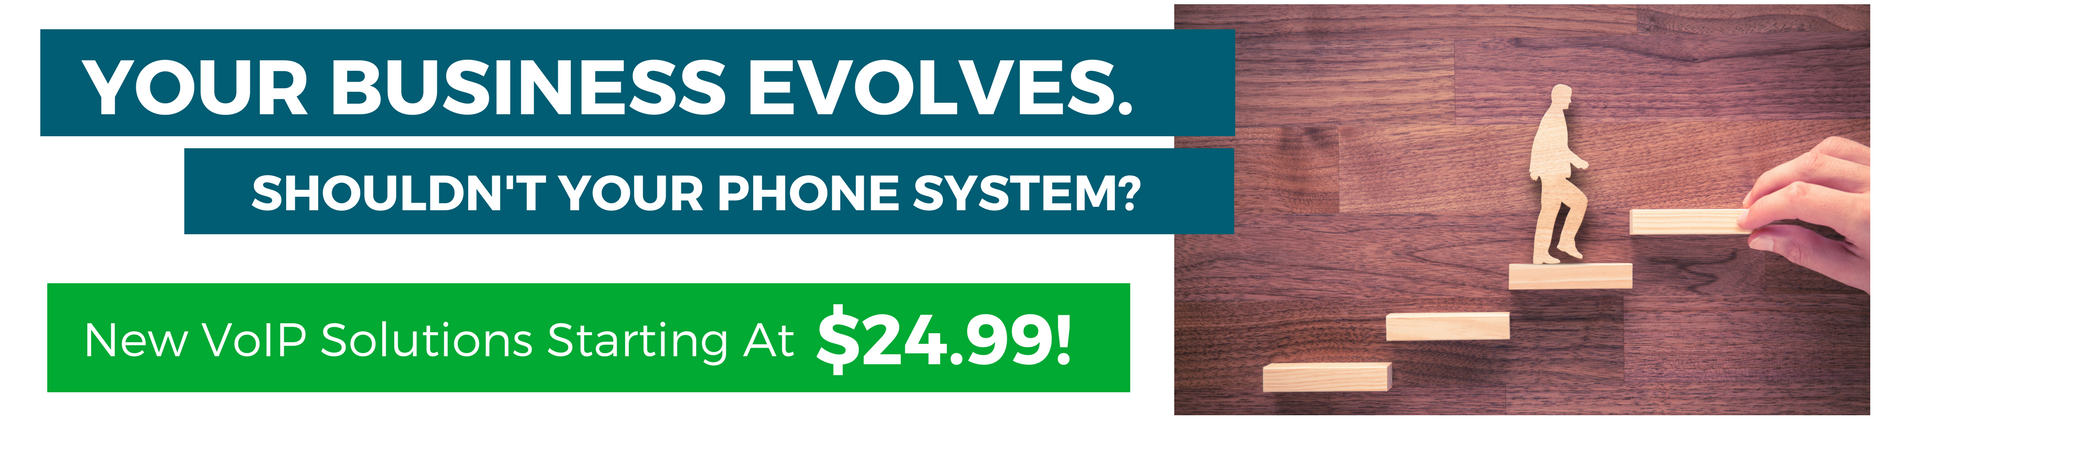 $24.99 VoIP Solutions Available for a Limited Time!